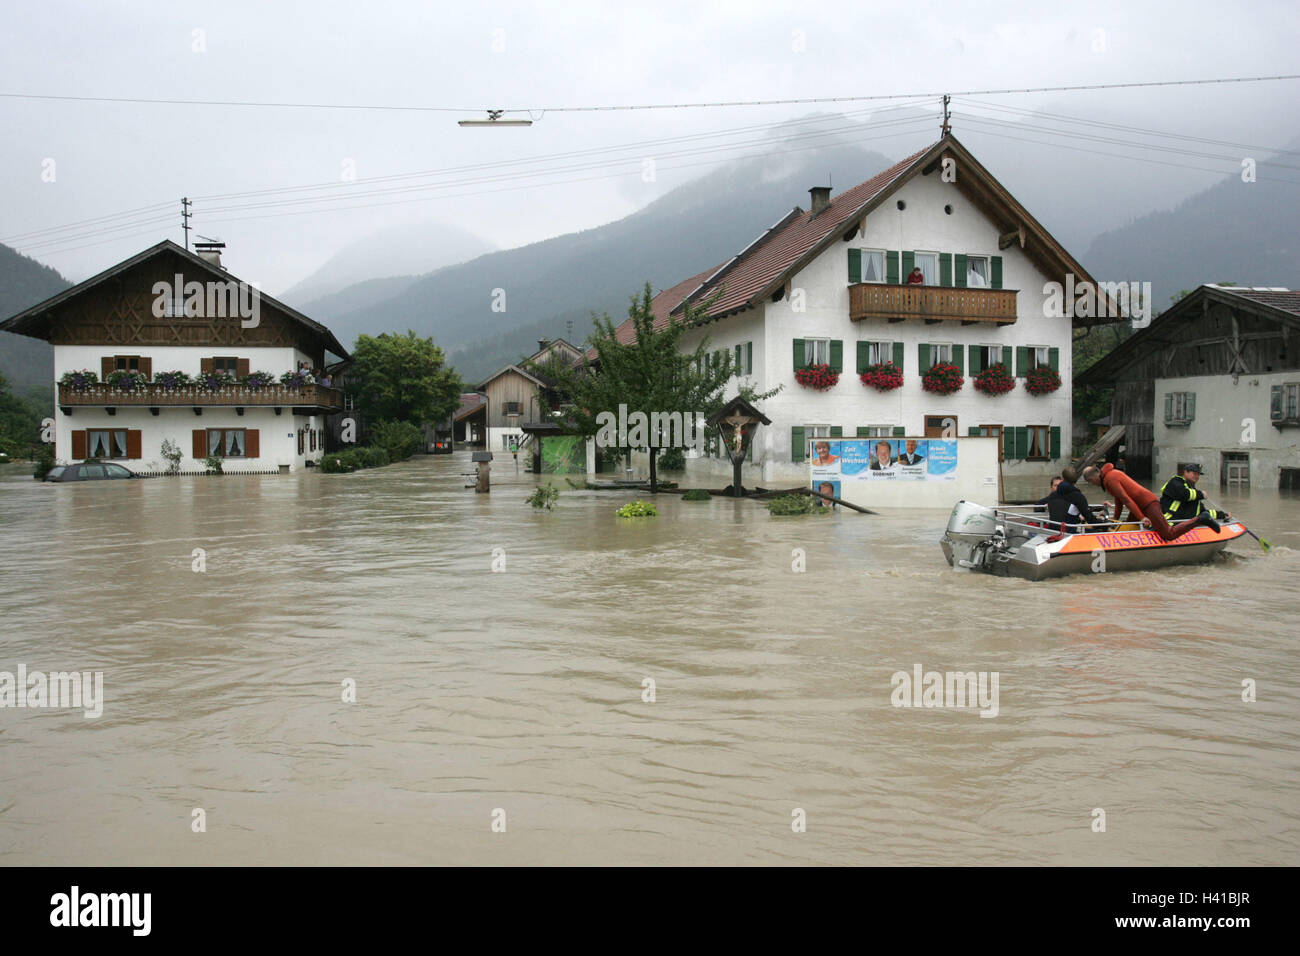 Germany, Bavaria, ash raging flame, river, Loisach, high waters, residences,  flood, rescue strengths, boat, only - Stock Image